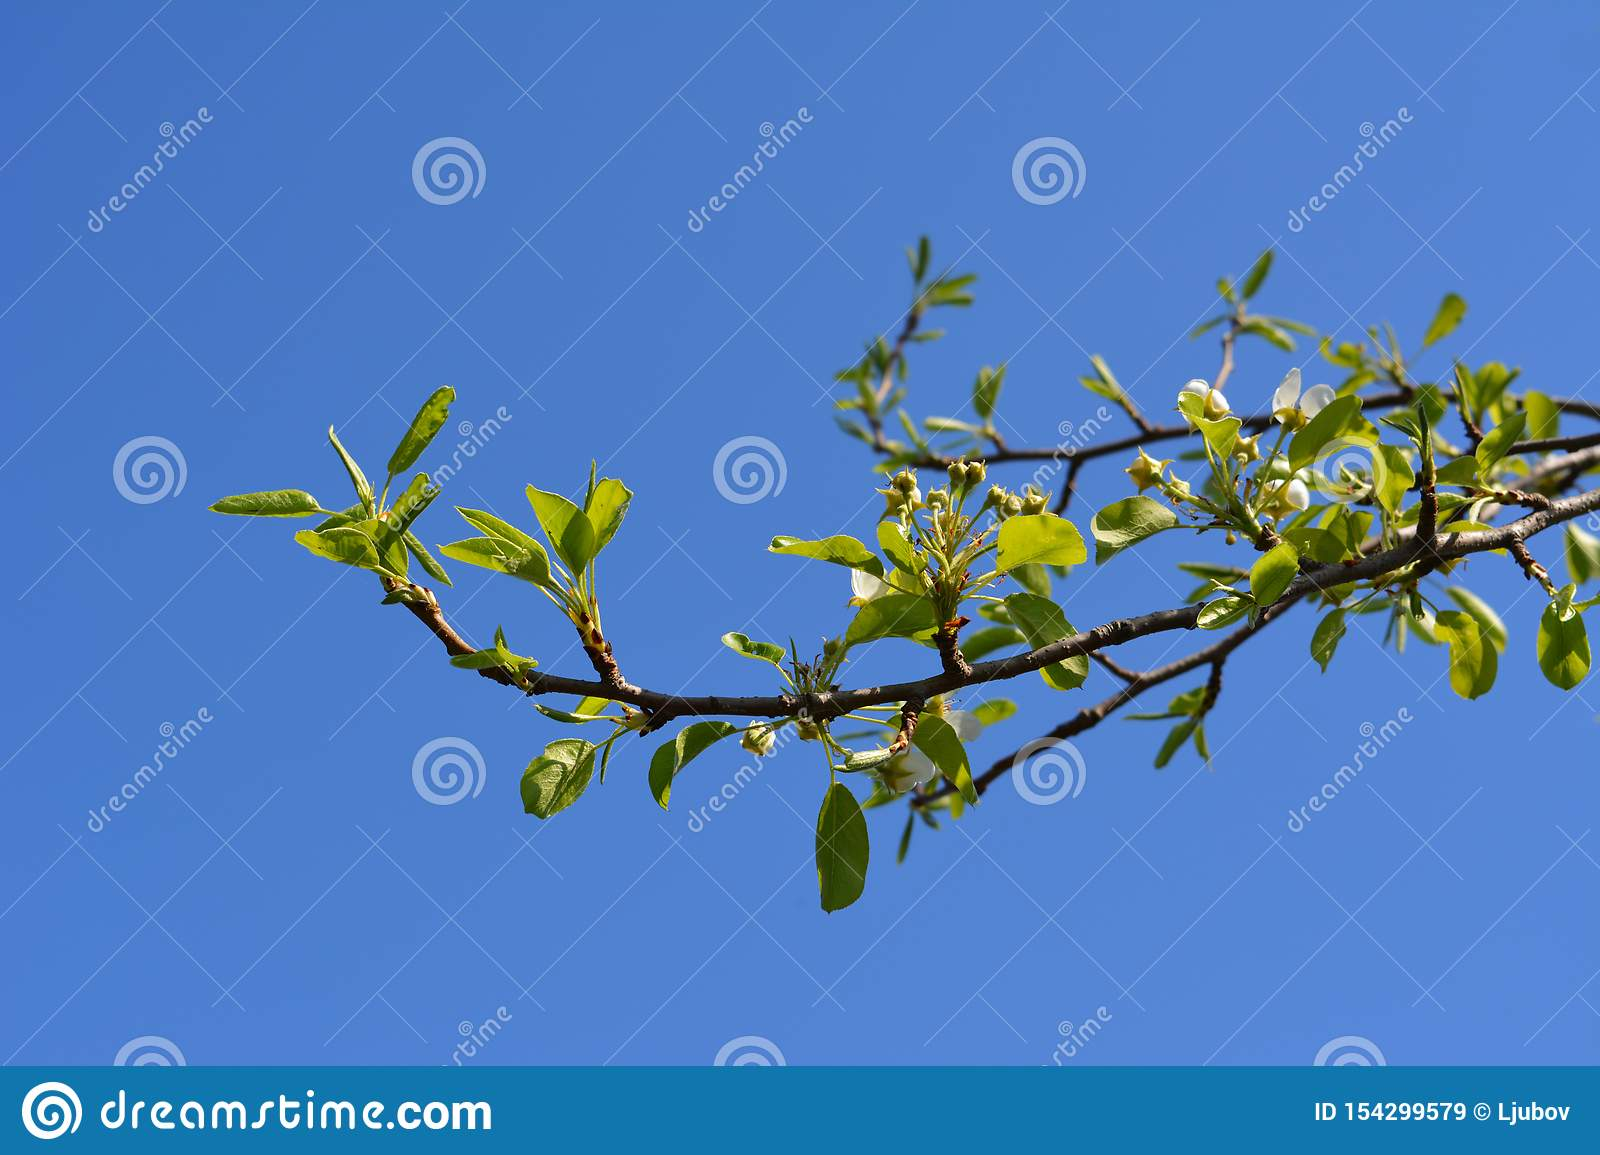 Pear tree branch with buds and fresh green leaves against clear blue sky